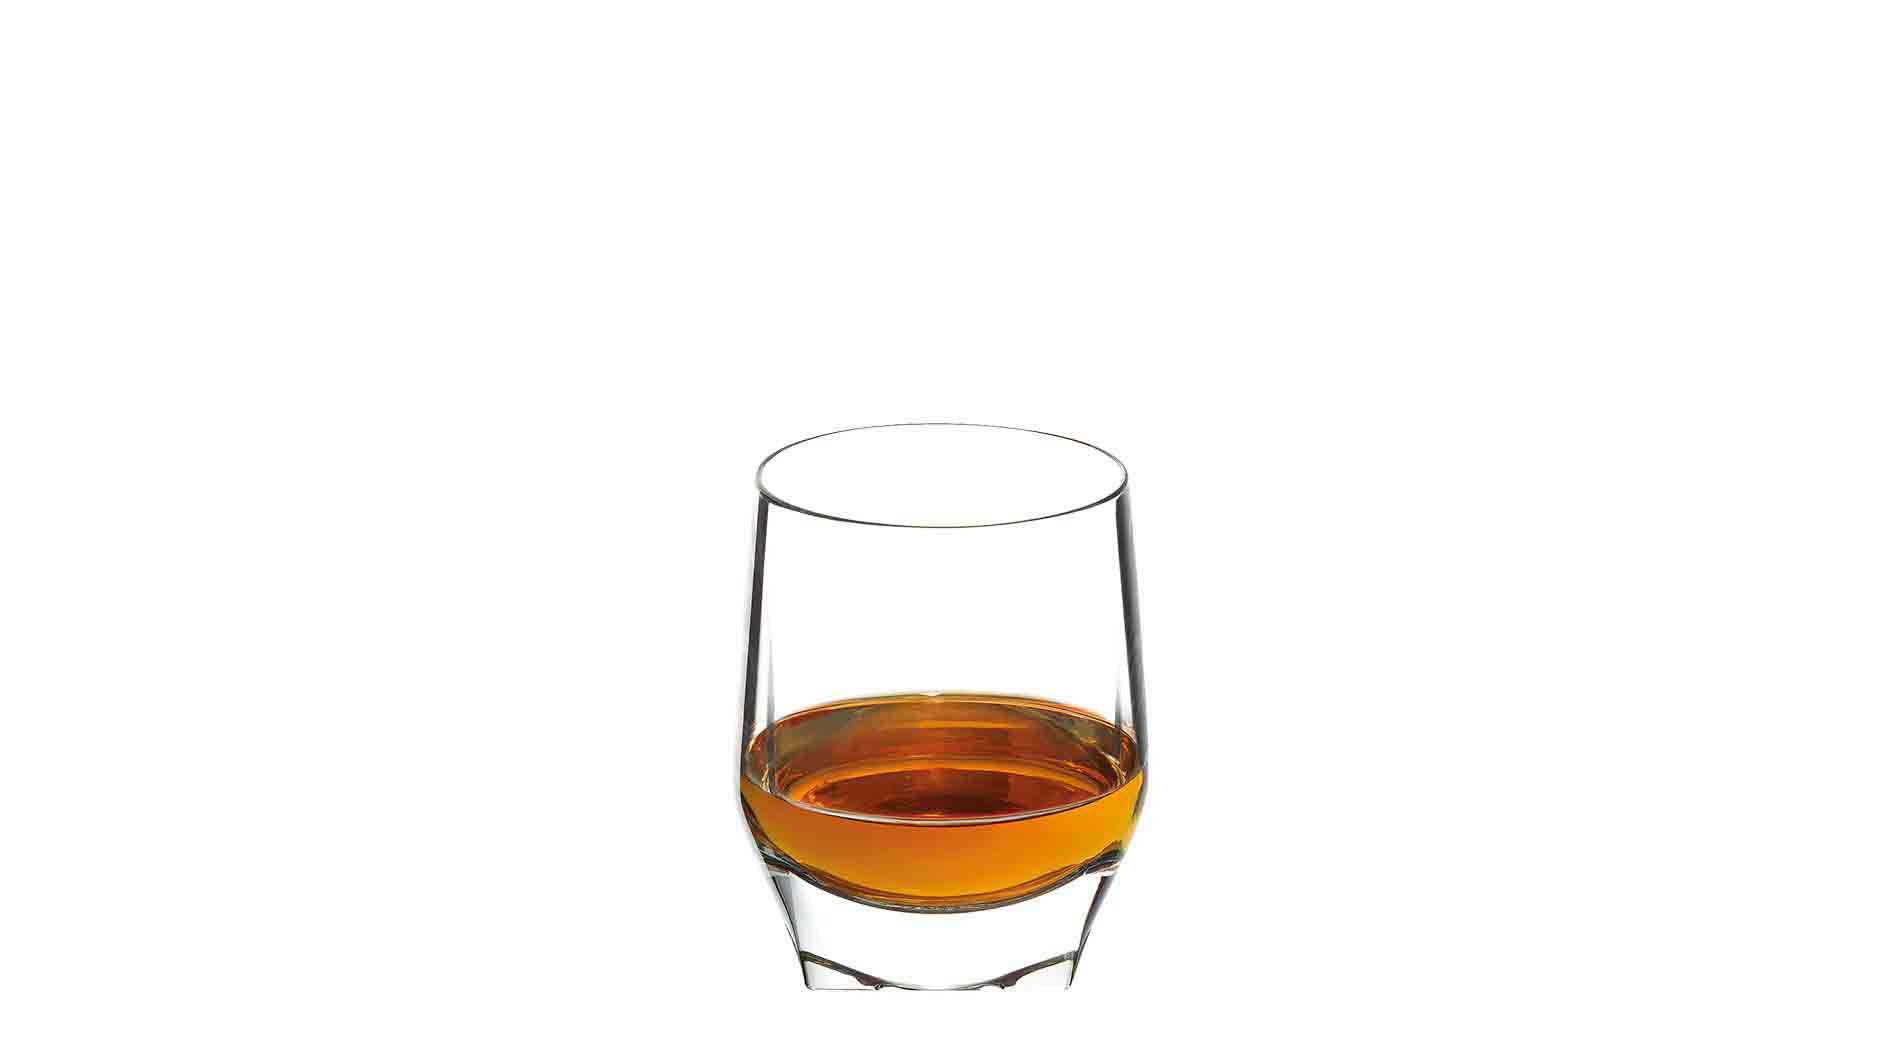 Johnnie Walker Blue Label Perfekt Serve in einem Whisky-Tumbler